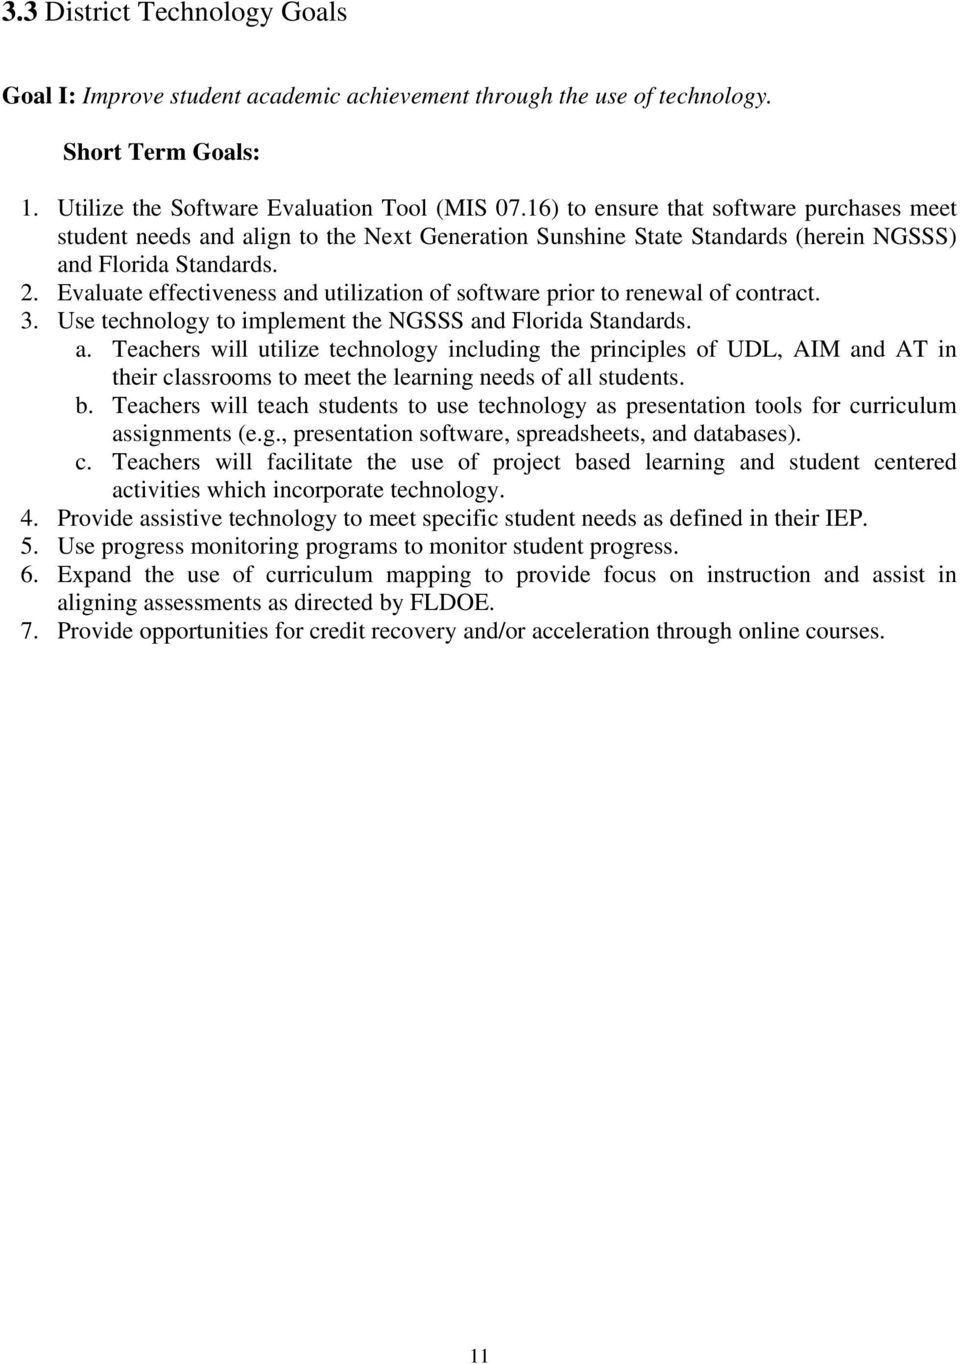 THE SCHOOL BOARD OF HIGHLANDS COUNTY DISTRICT TECHNOLOGY PLAN - PDF